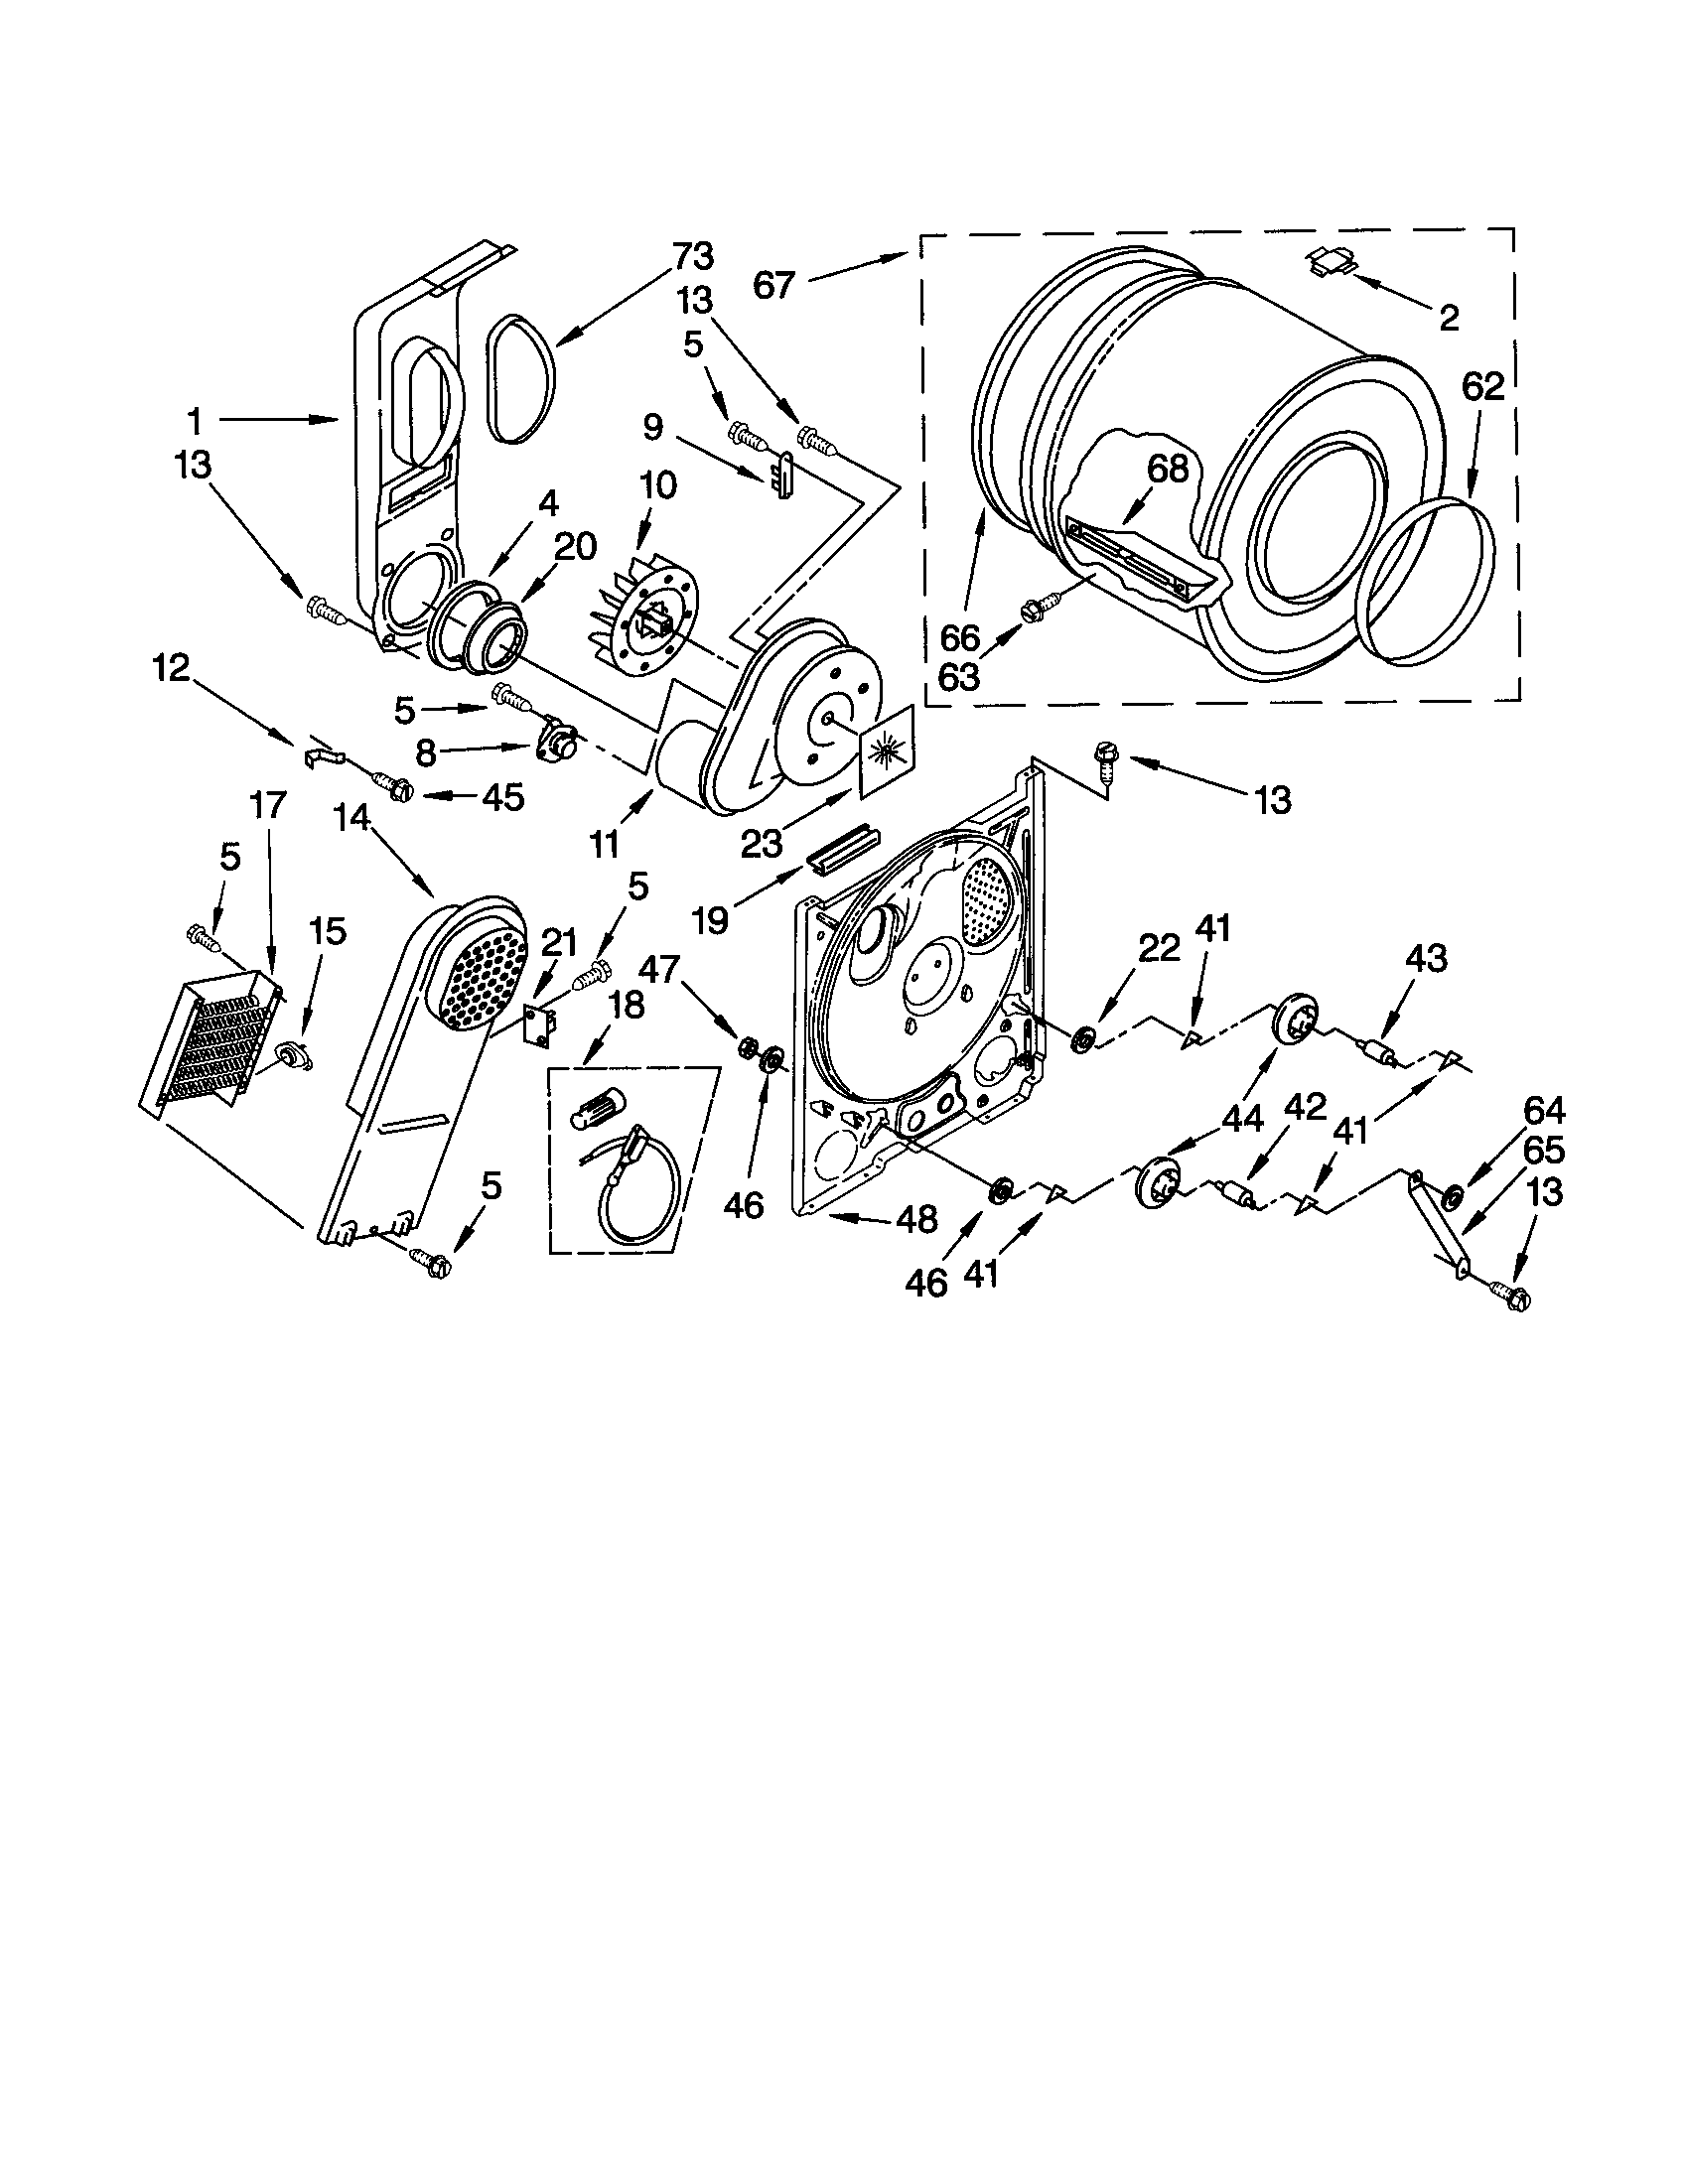 Kenmore 90 Series Dryer Manual